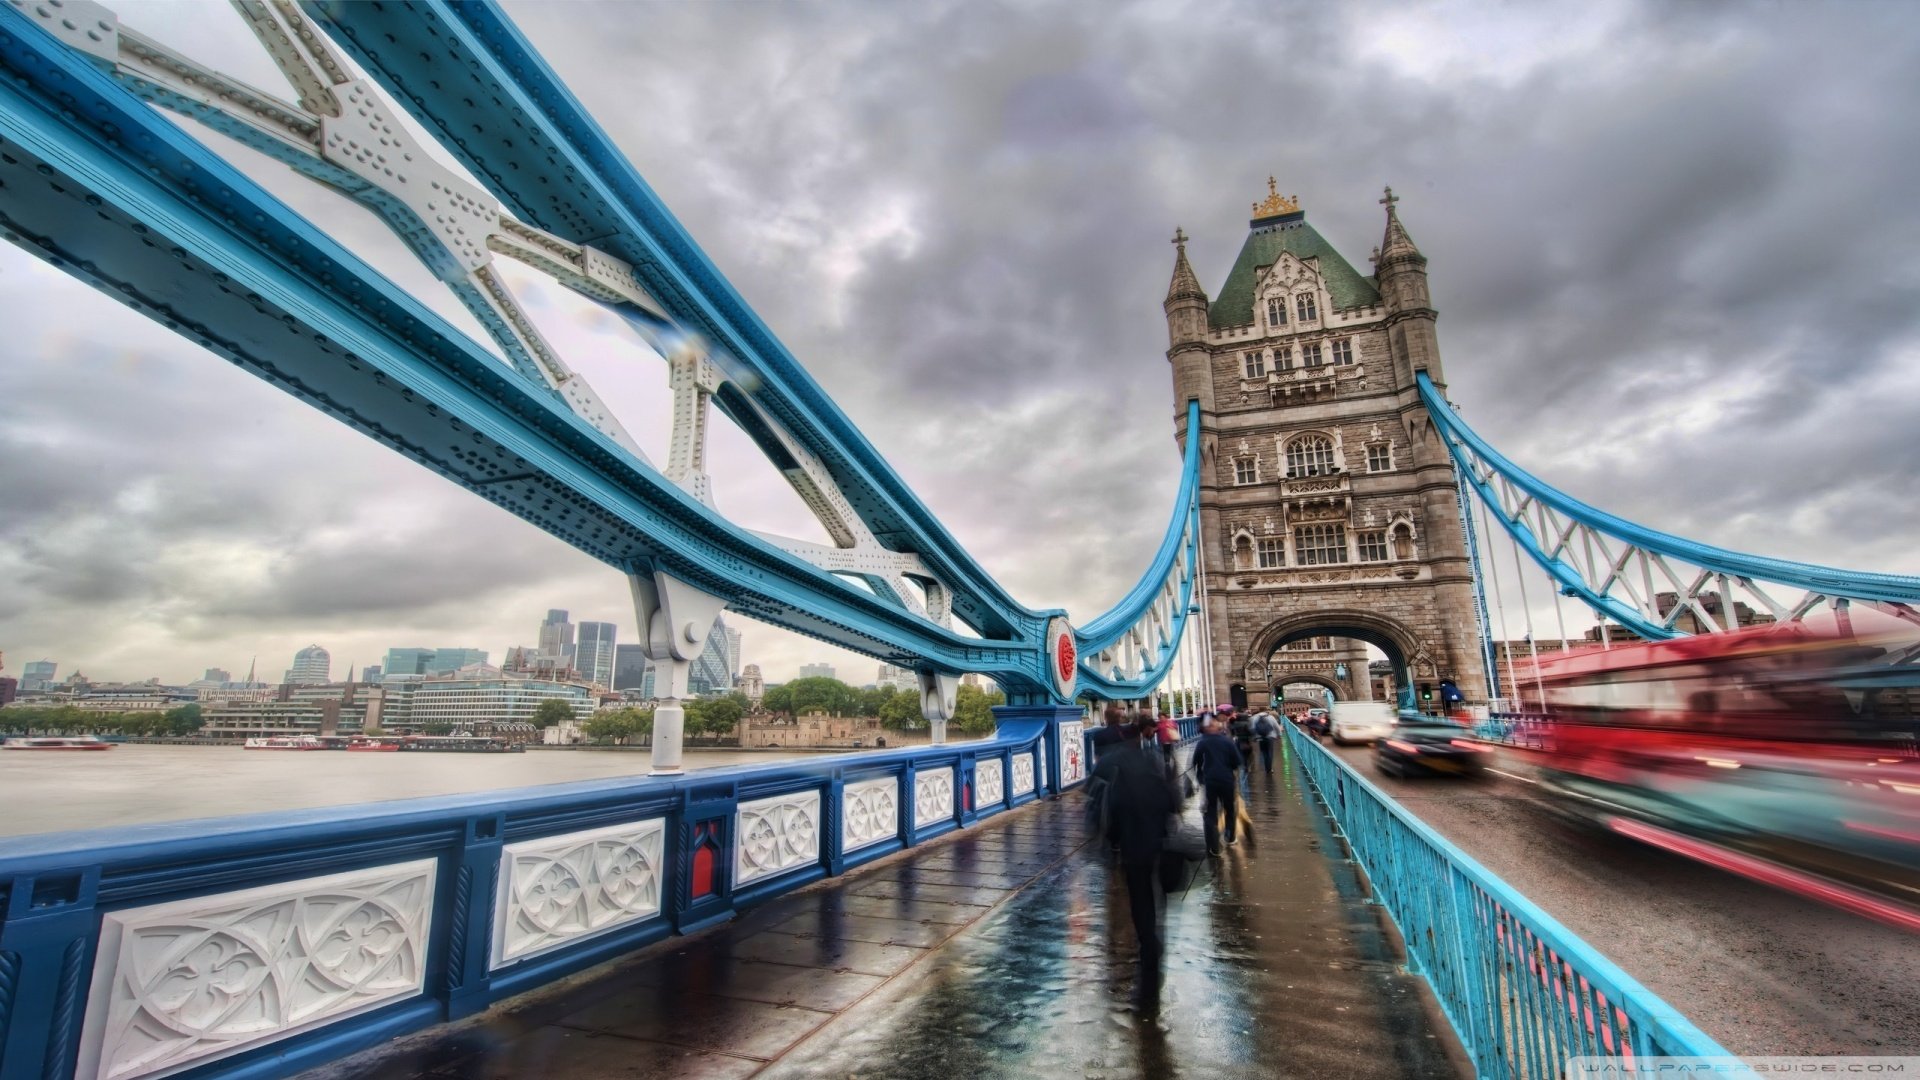 London Tower Bridge Walkway